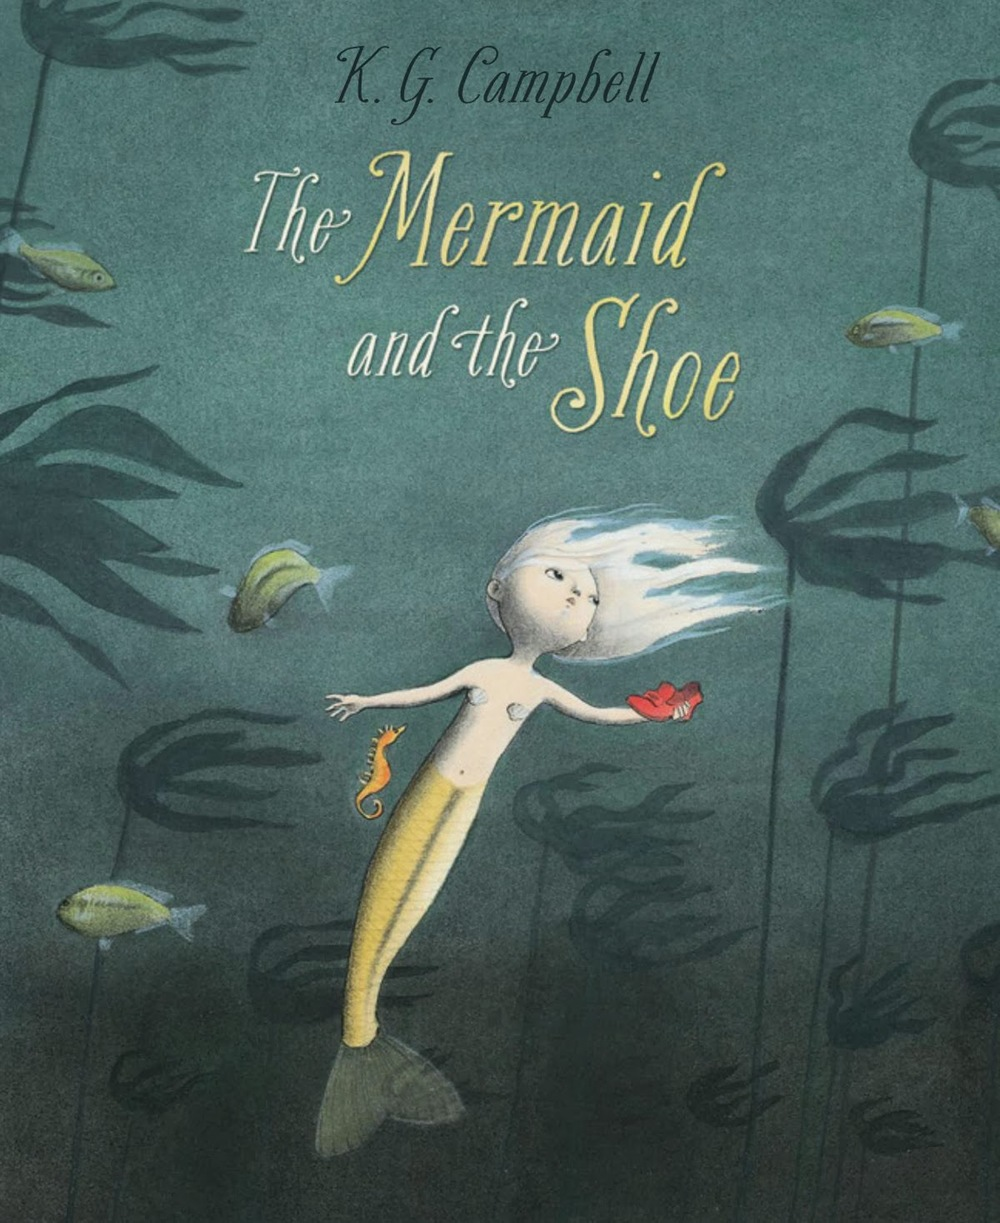 The Mermaid and the Shoe.jpg